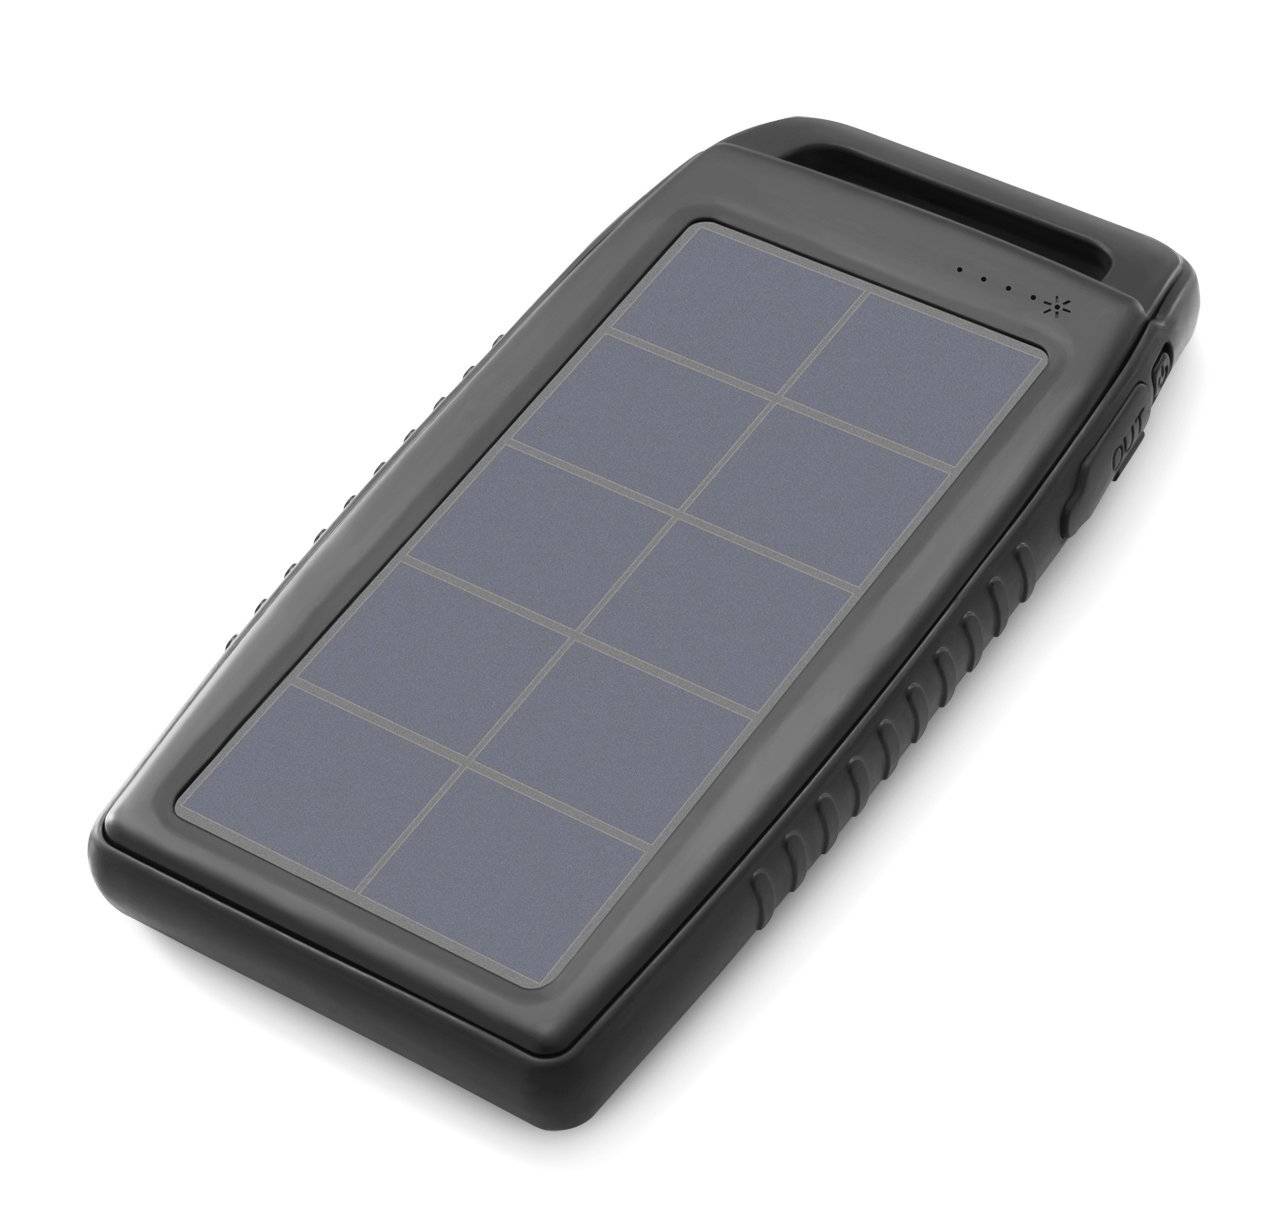 Nekteck Solar Charger 10000mAh Rain-Resistant Dirt/Shockproof Dual USB Port Portable Charger Battery with High-Efficiency SunPower Solar Panel Backup Power Pack for All USB Supported Devices, Black by Nekteck